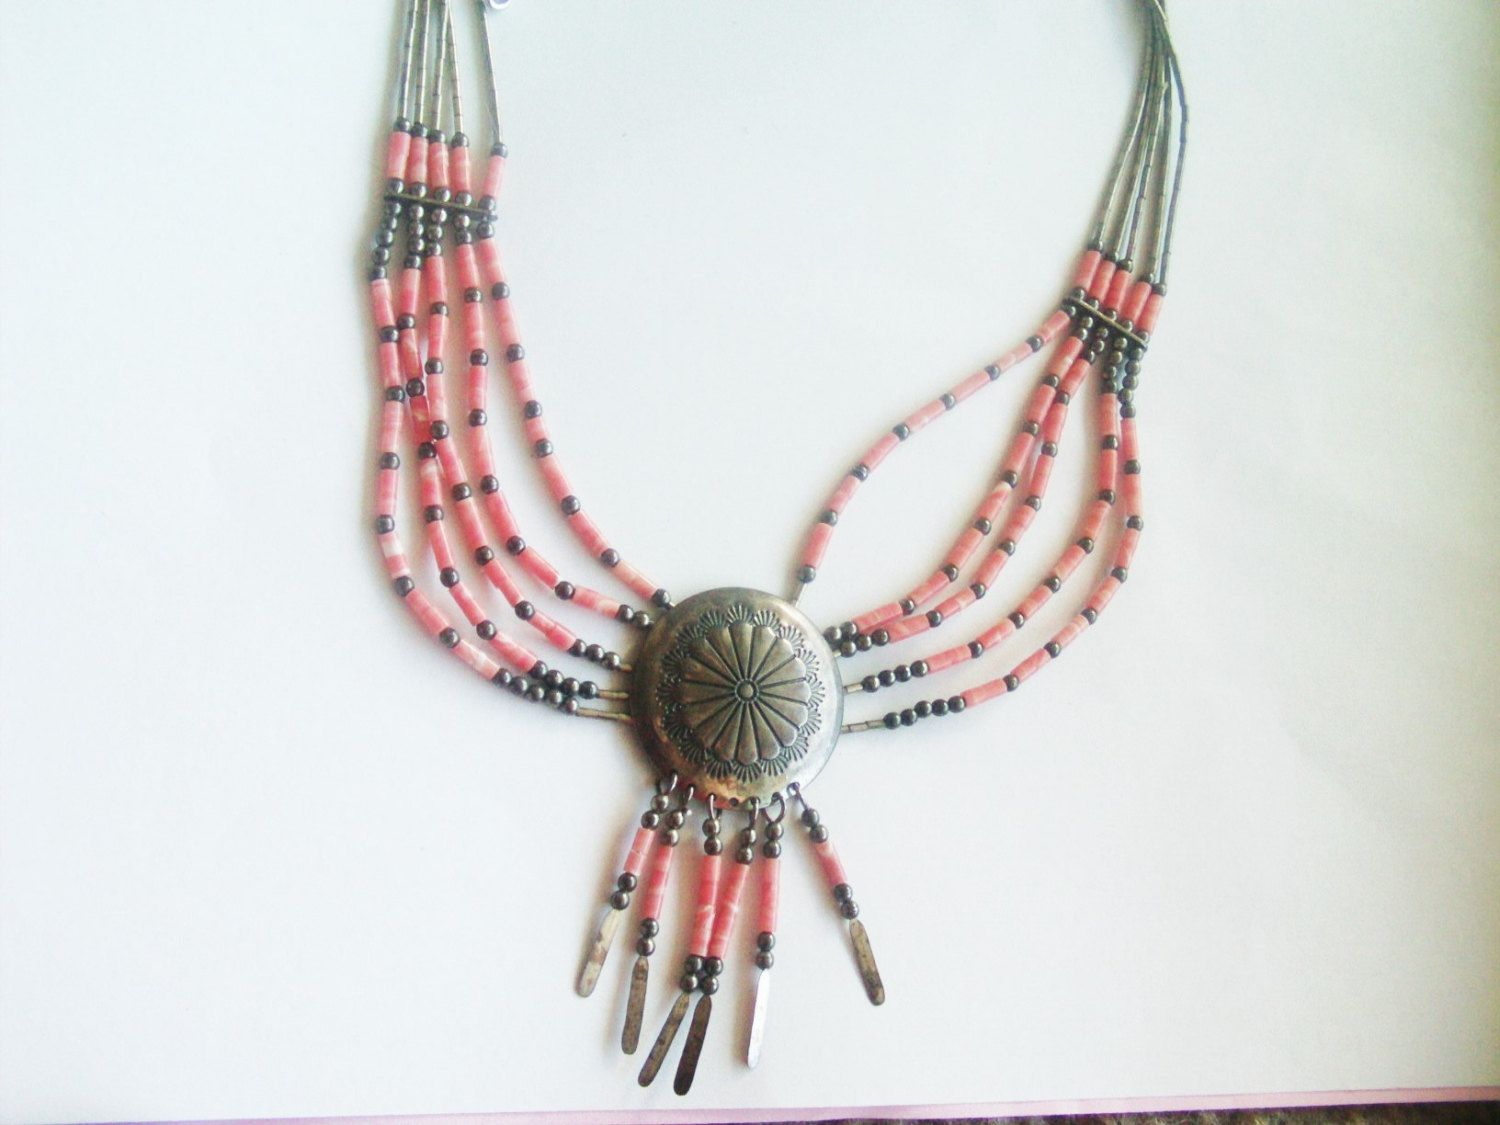 American Indian Jewelry / Coral Necklace / Coral Jewelry / Sterling Necklace / Sterling Jewelry / Indian Necklace / by TamJewelryandUniques on Etsy